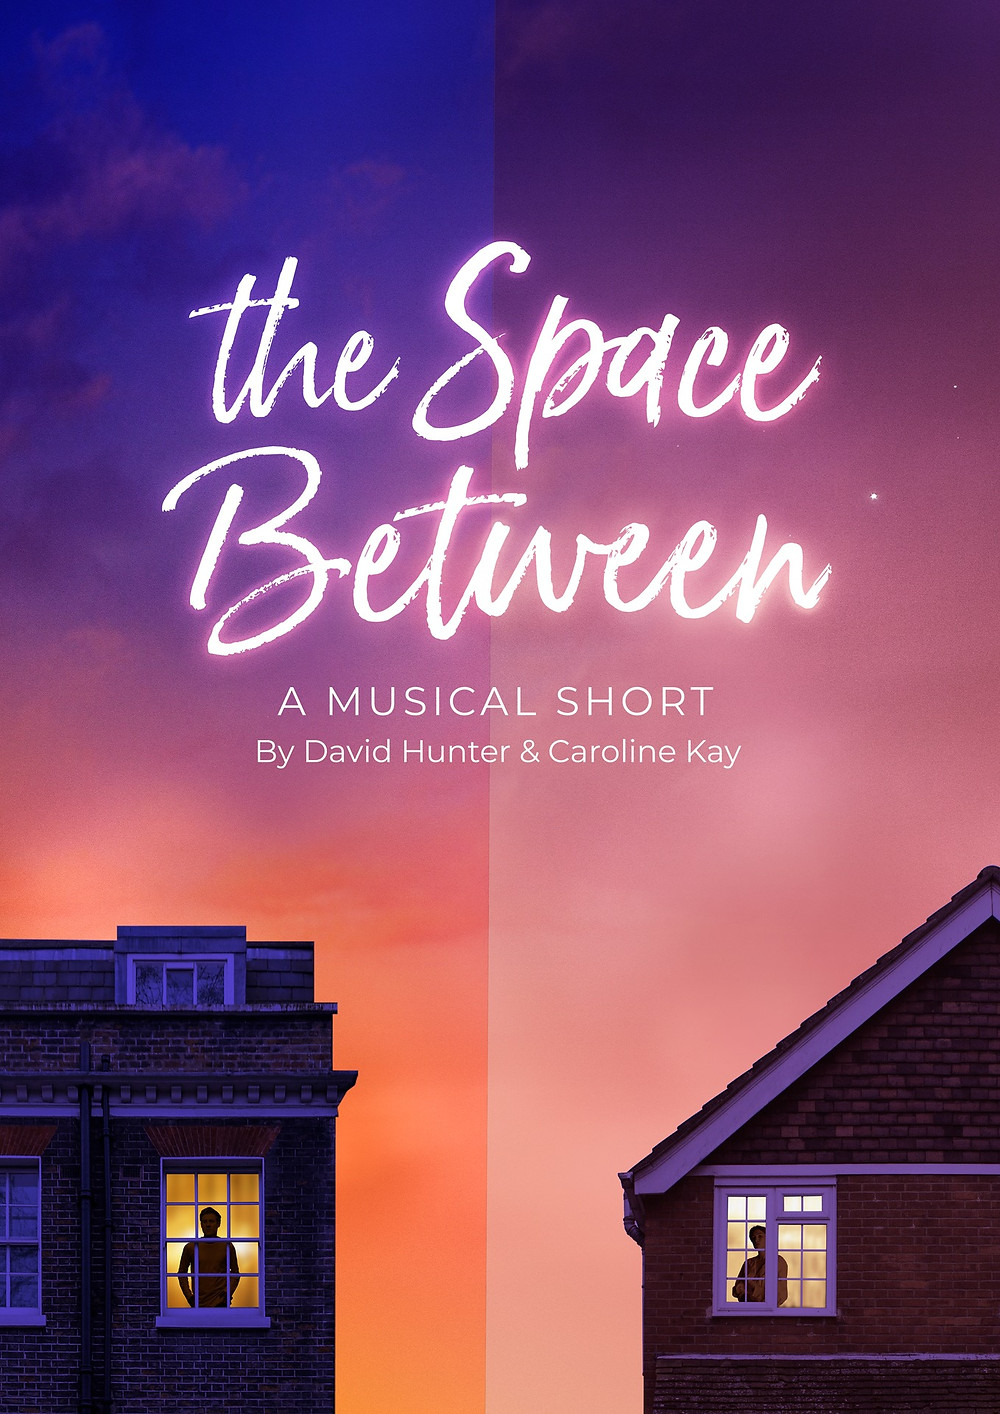 A man and a woman stand in the windows of two separate houses, miles apart. Text at the top reads 'The Space Between.'